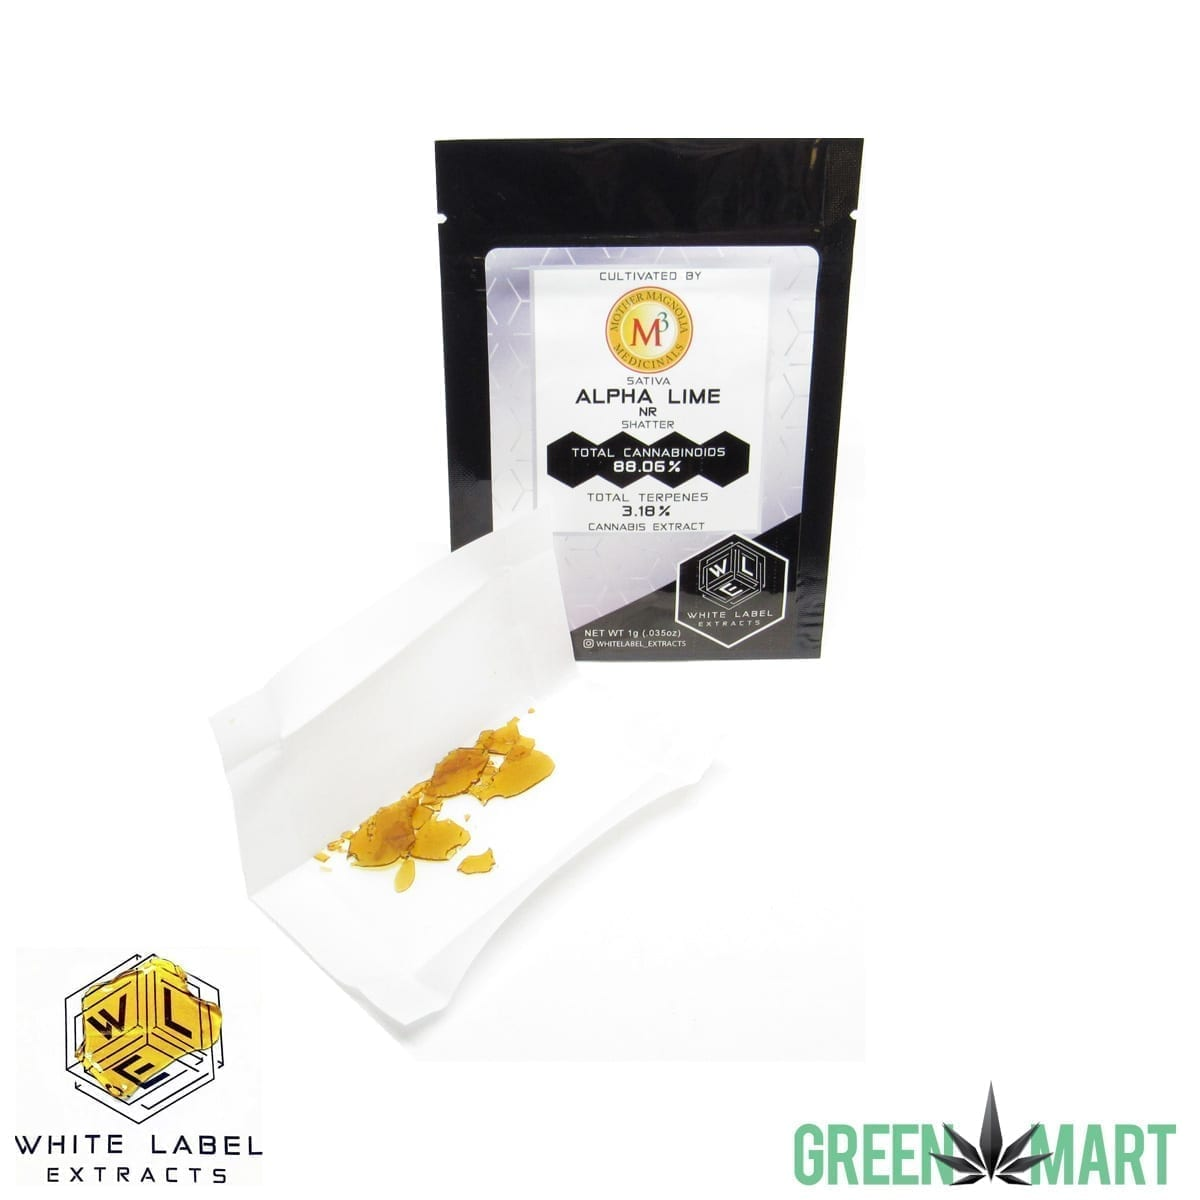 White Label Extracts - Alpha Lime